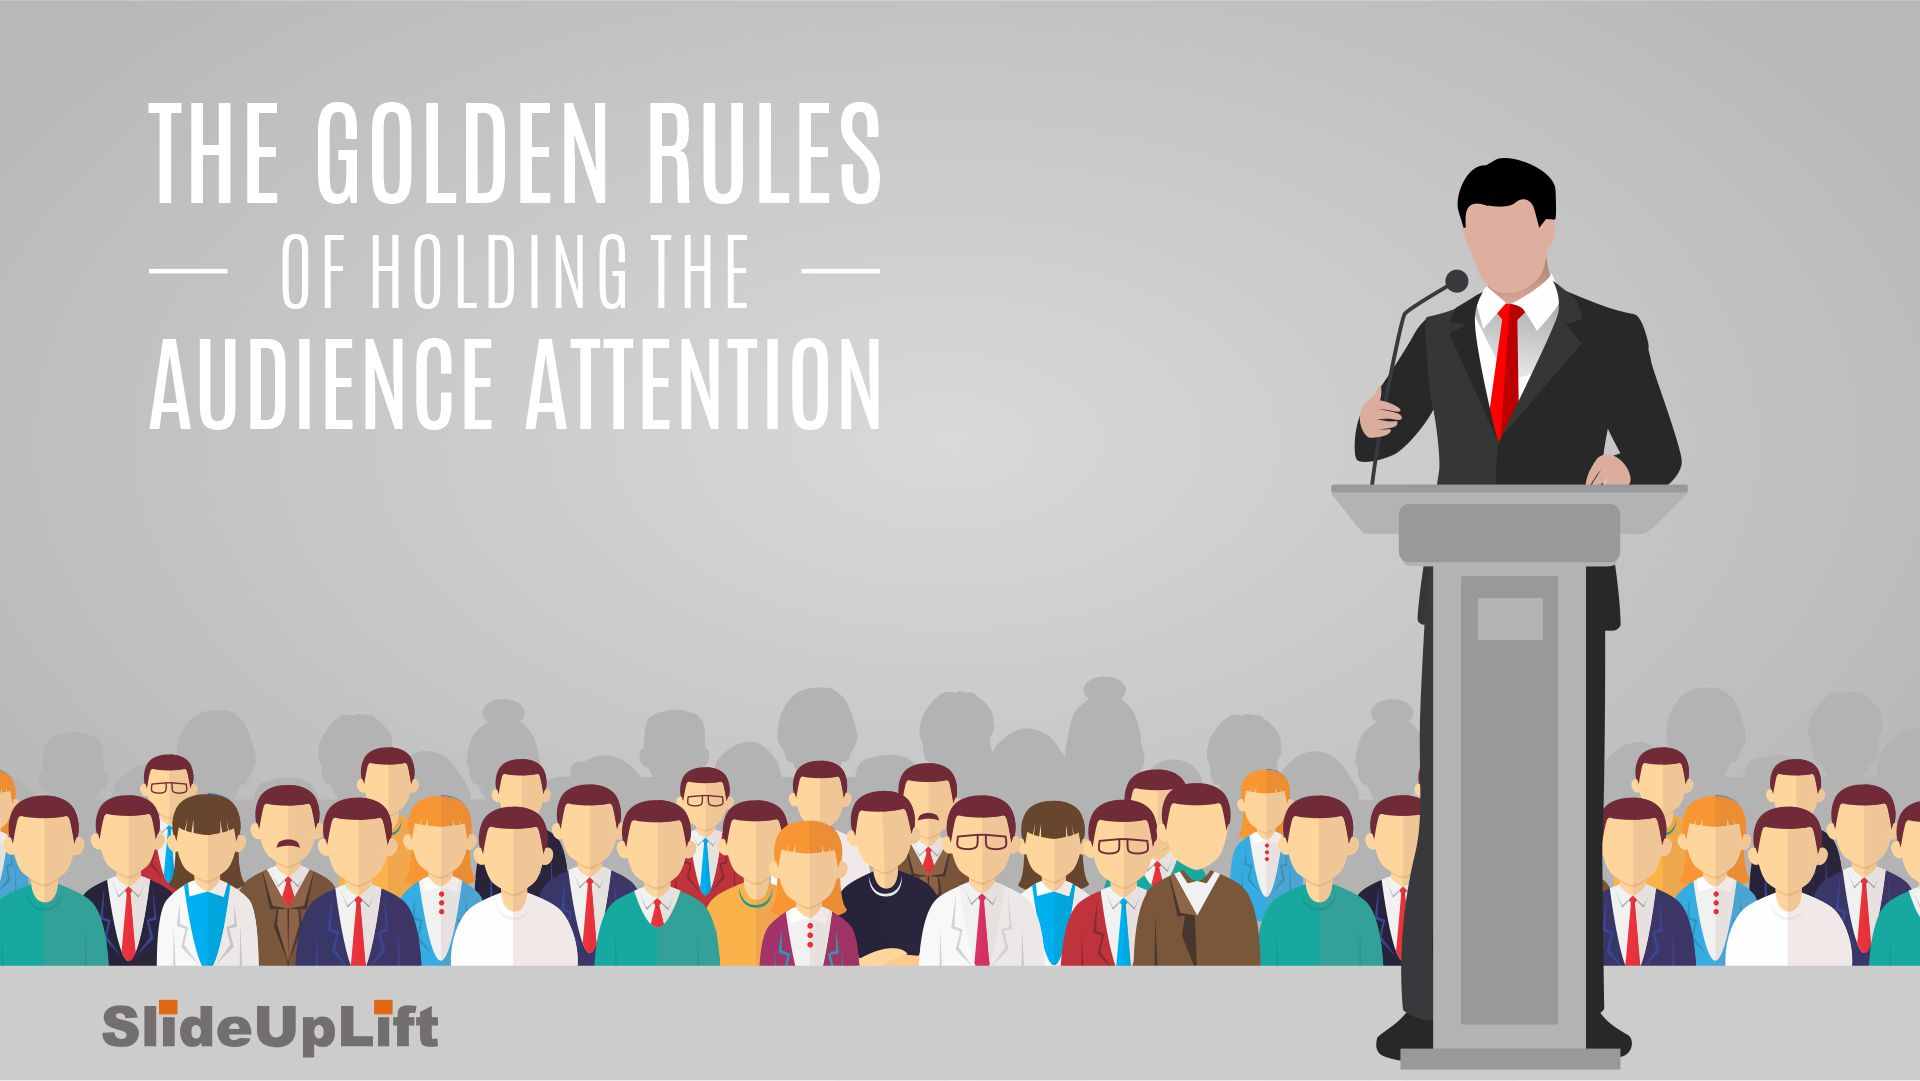 The Golden Rules of holding the audience attention in PowerPoint Presentations